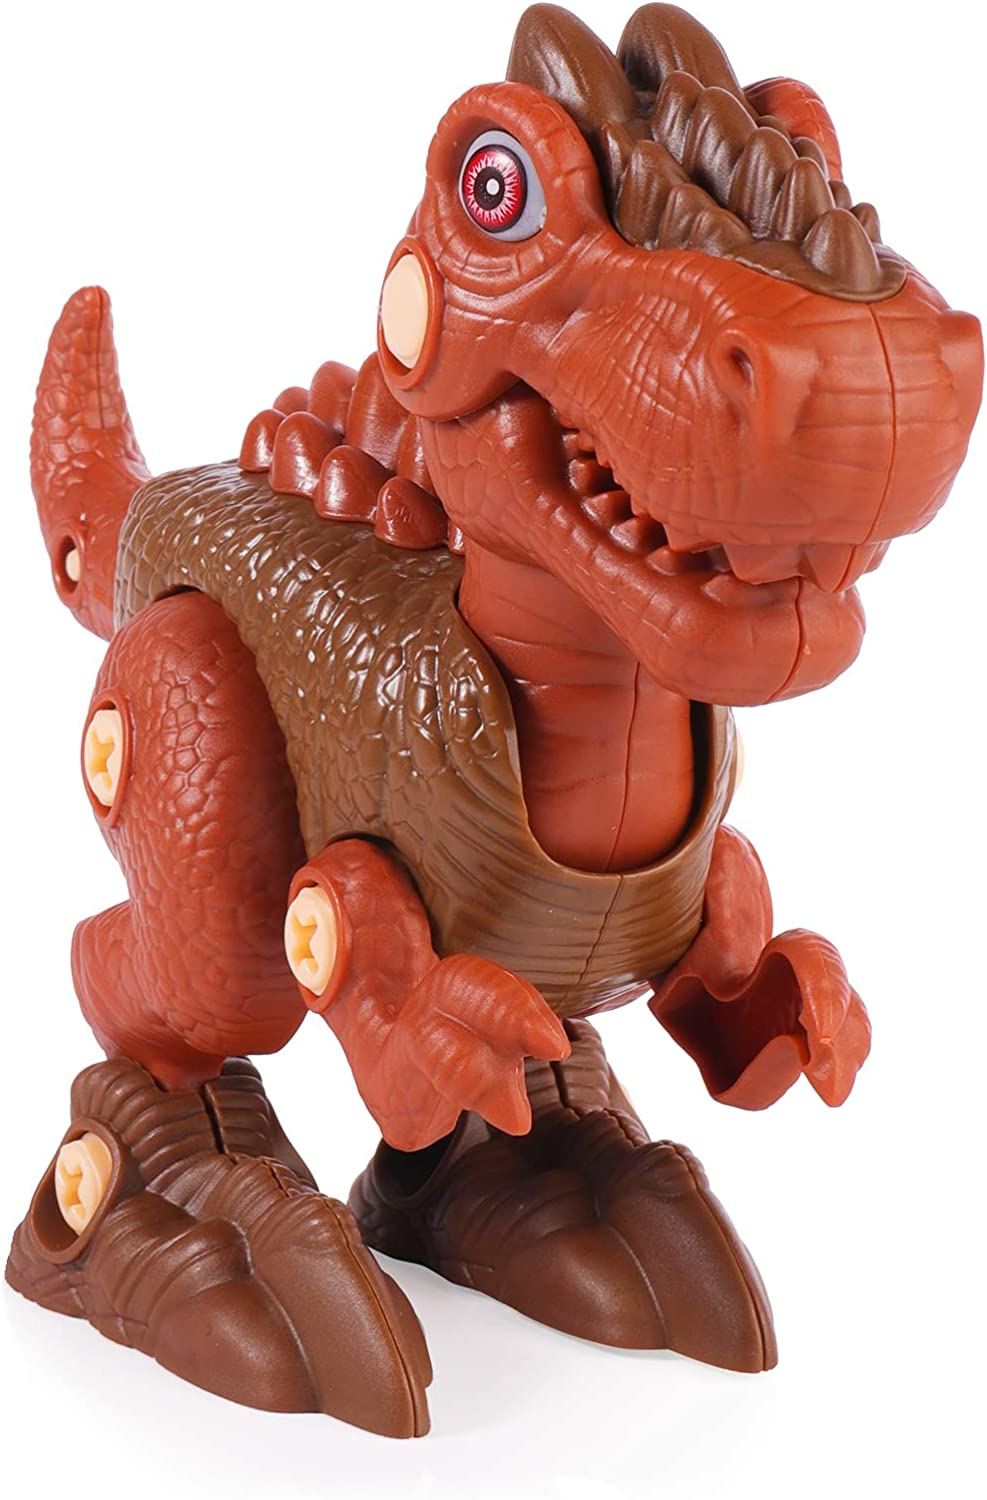 Building Toy Set with Electric Drill,Kids Building Dino Play Kit Construction Engineering Play Kit RS009-1 Kids Dinosaur Toys Brown TOPCHANCES Take Apart Dinosaur Toys for Boys